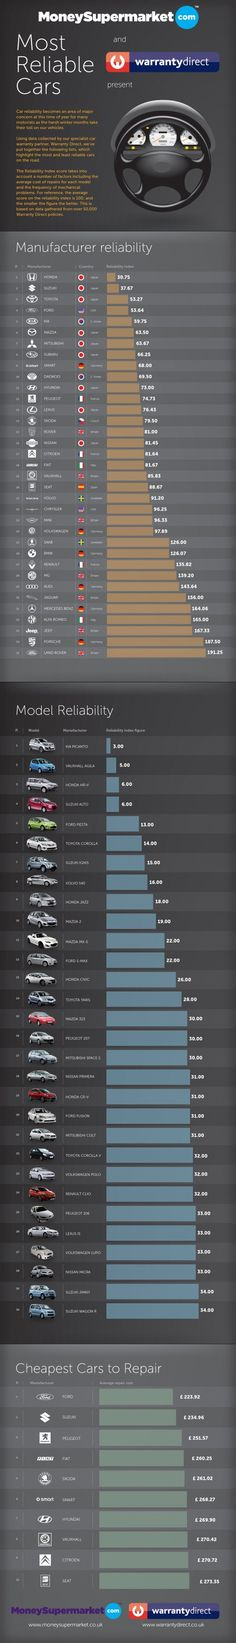 Most Reliable Cars - Blog About Infographics and Data Visualization - Cool Infographics